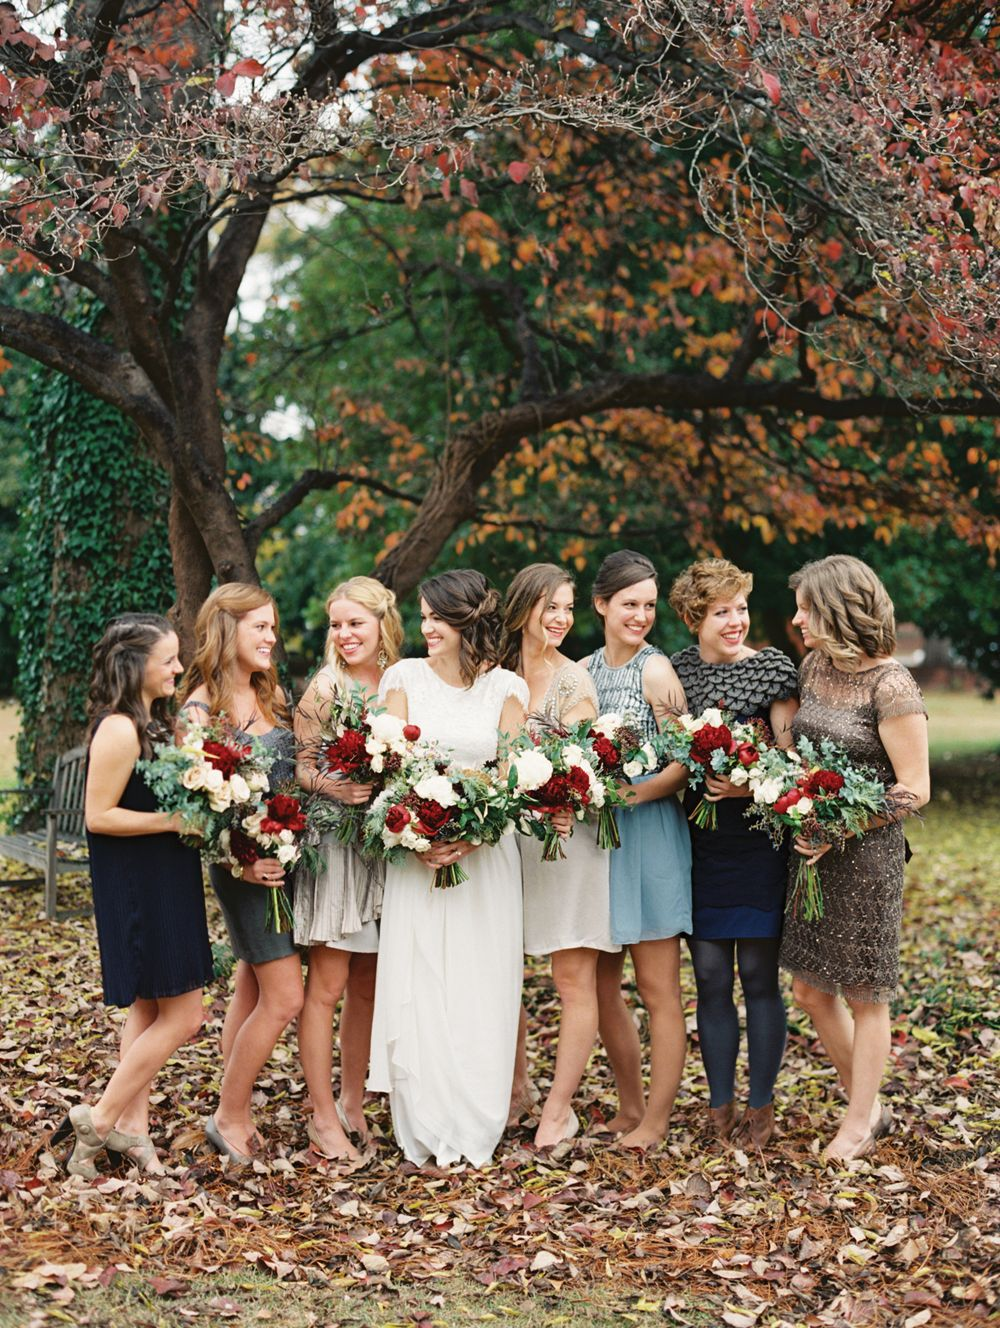 Autumn bridesmaid dresses in a variety of neutral greige and blue autumn bridesmaid dresses in a variety of neutral greige and blue hues brides dress by grace loves lace fall bouquets with deep red blooms by fern studio ombrellifo Choice Image